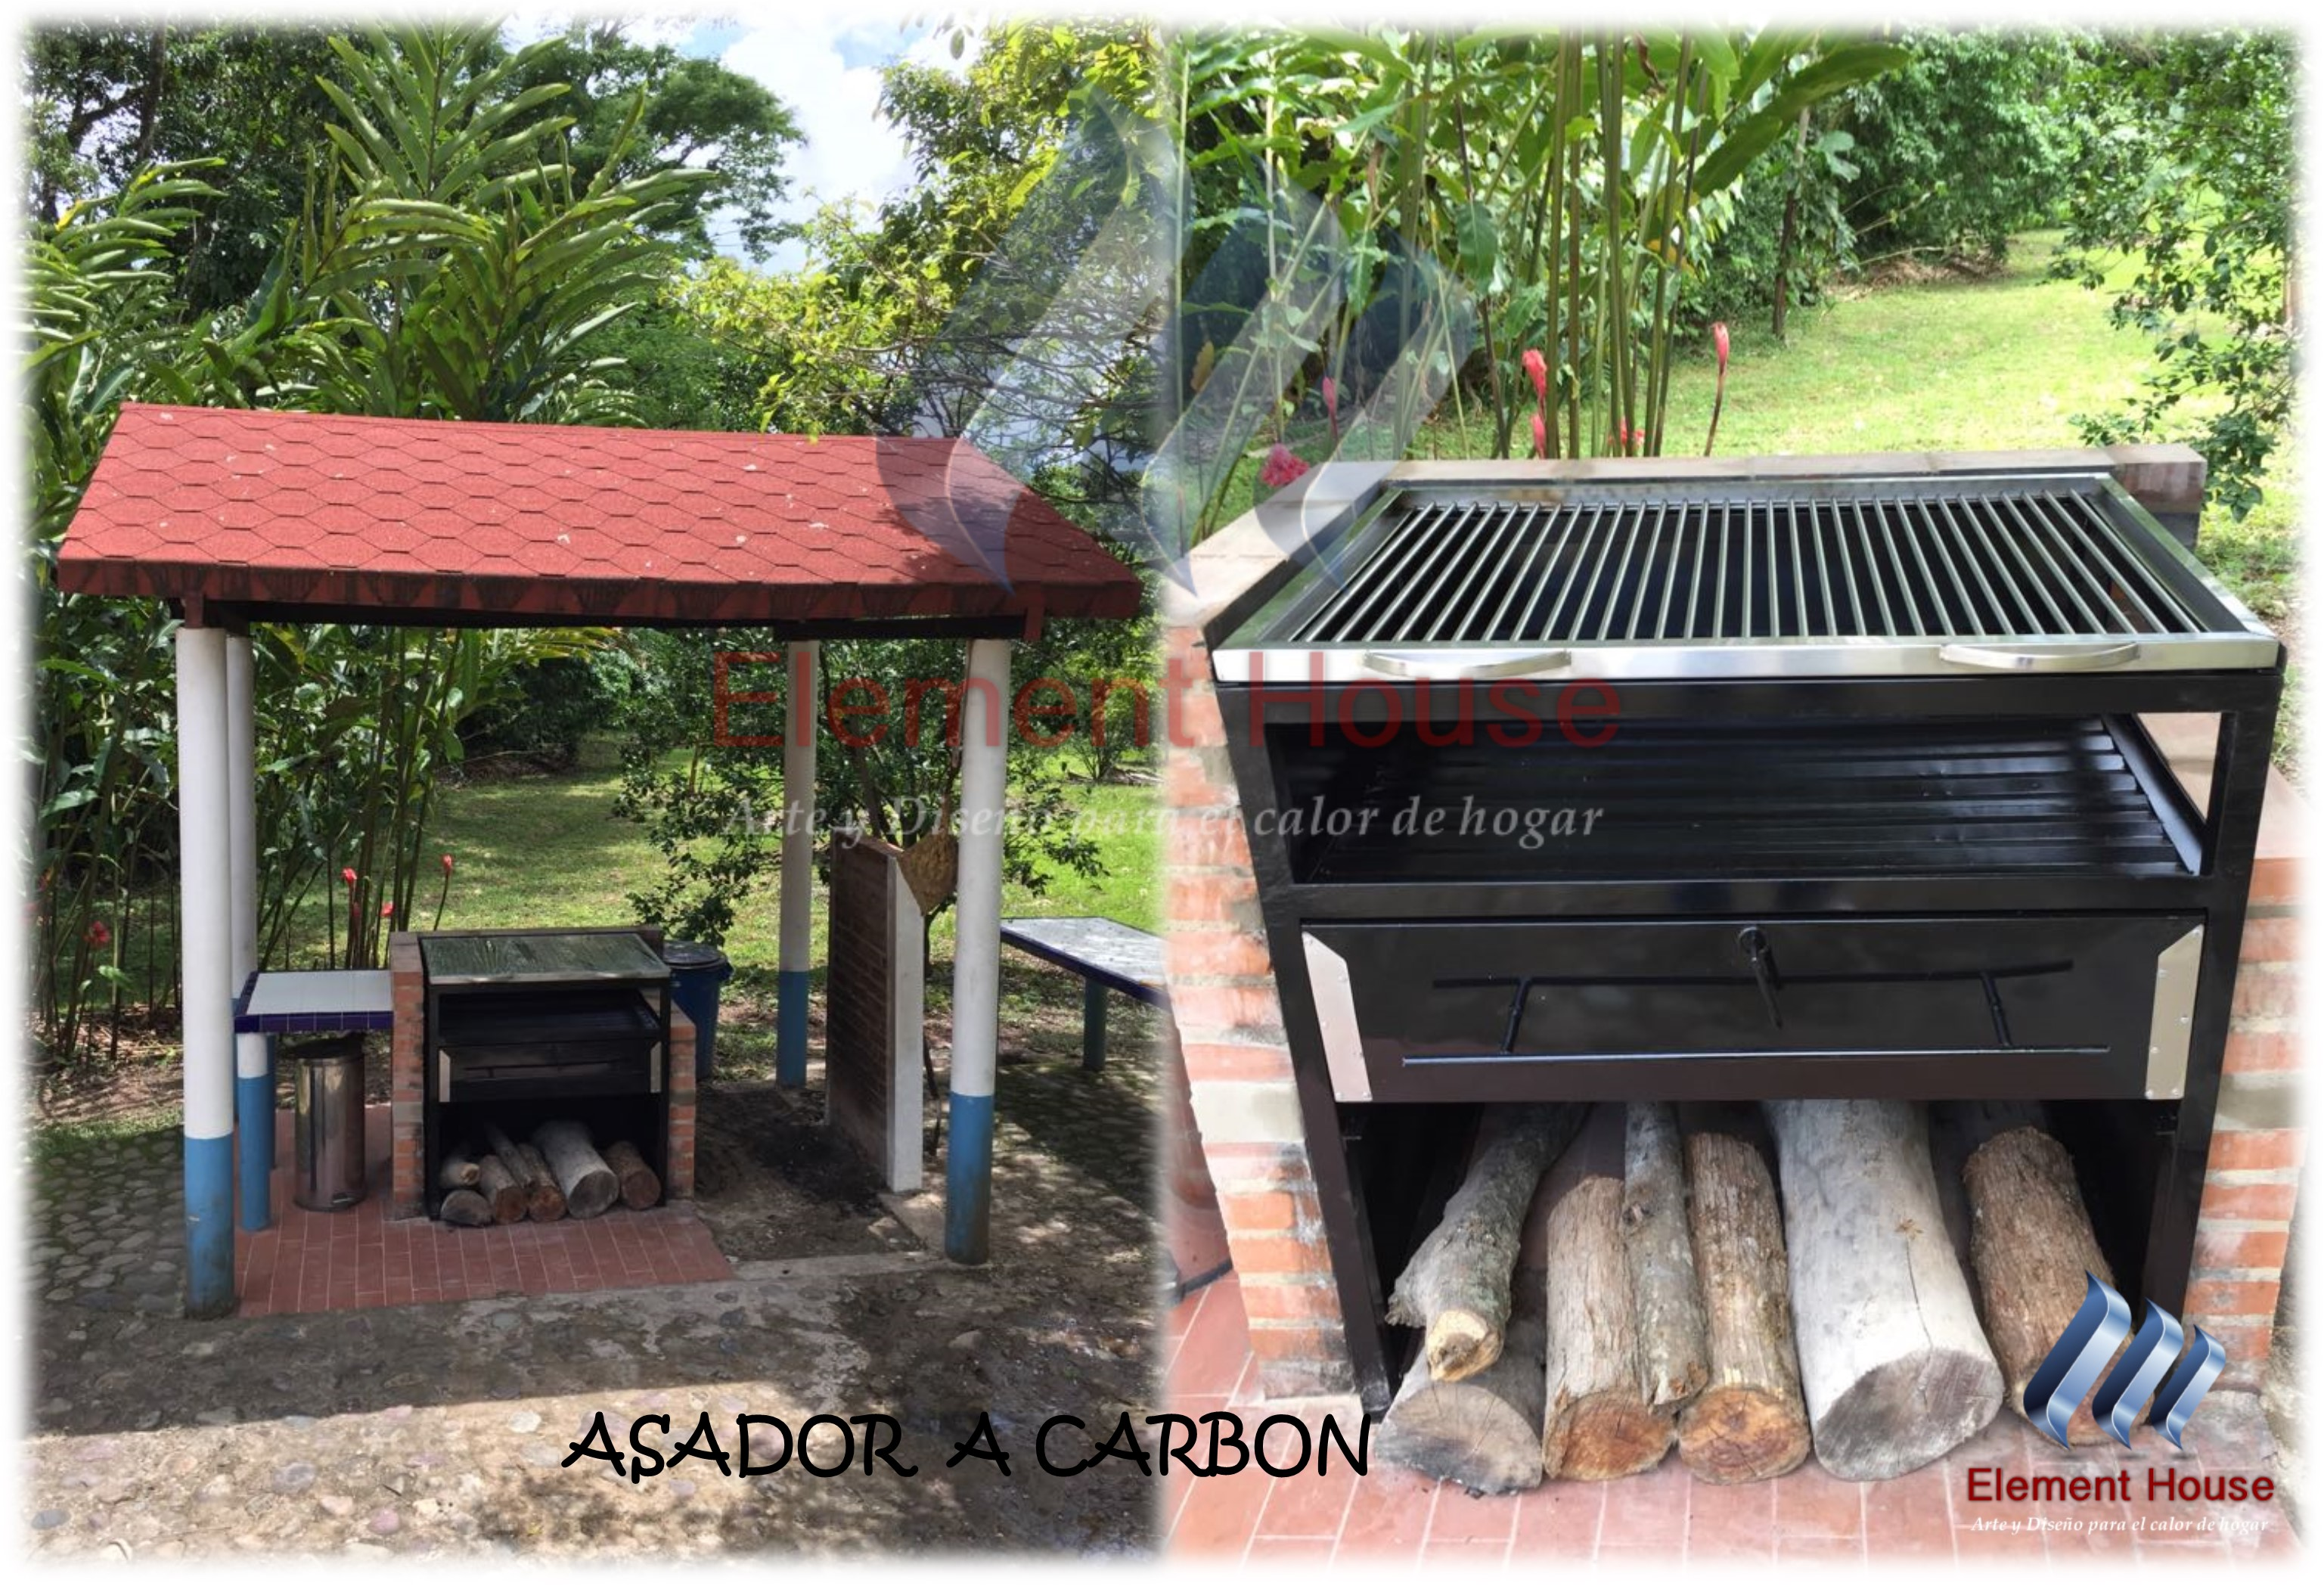 ASADOR A CARBON ELEMENT HOUSE